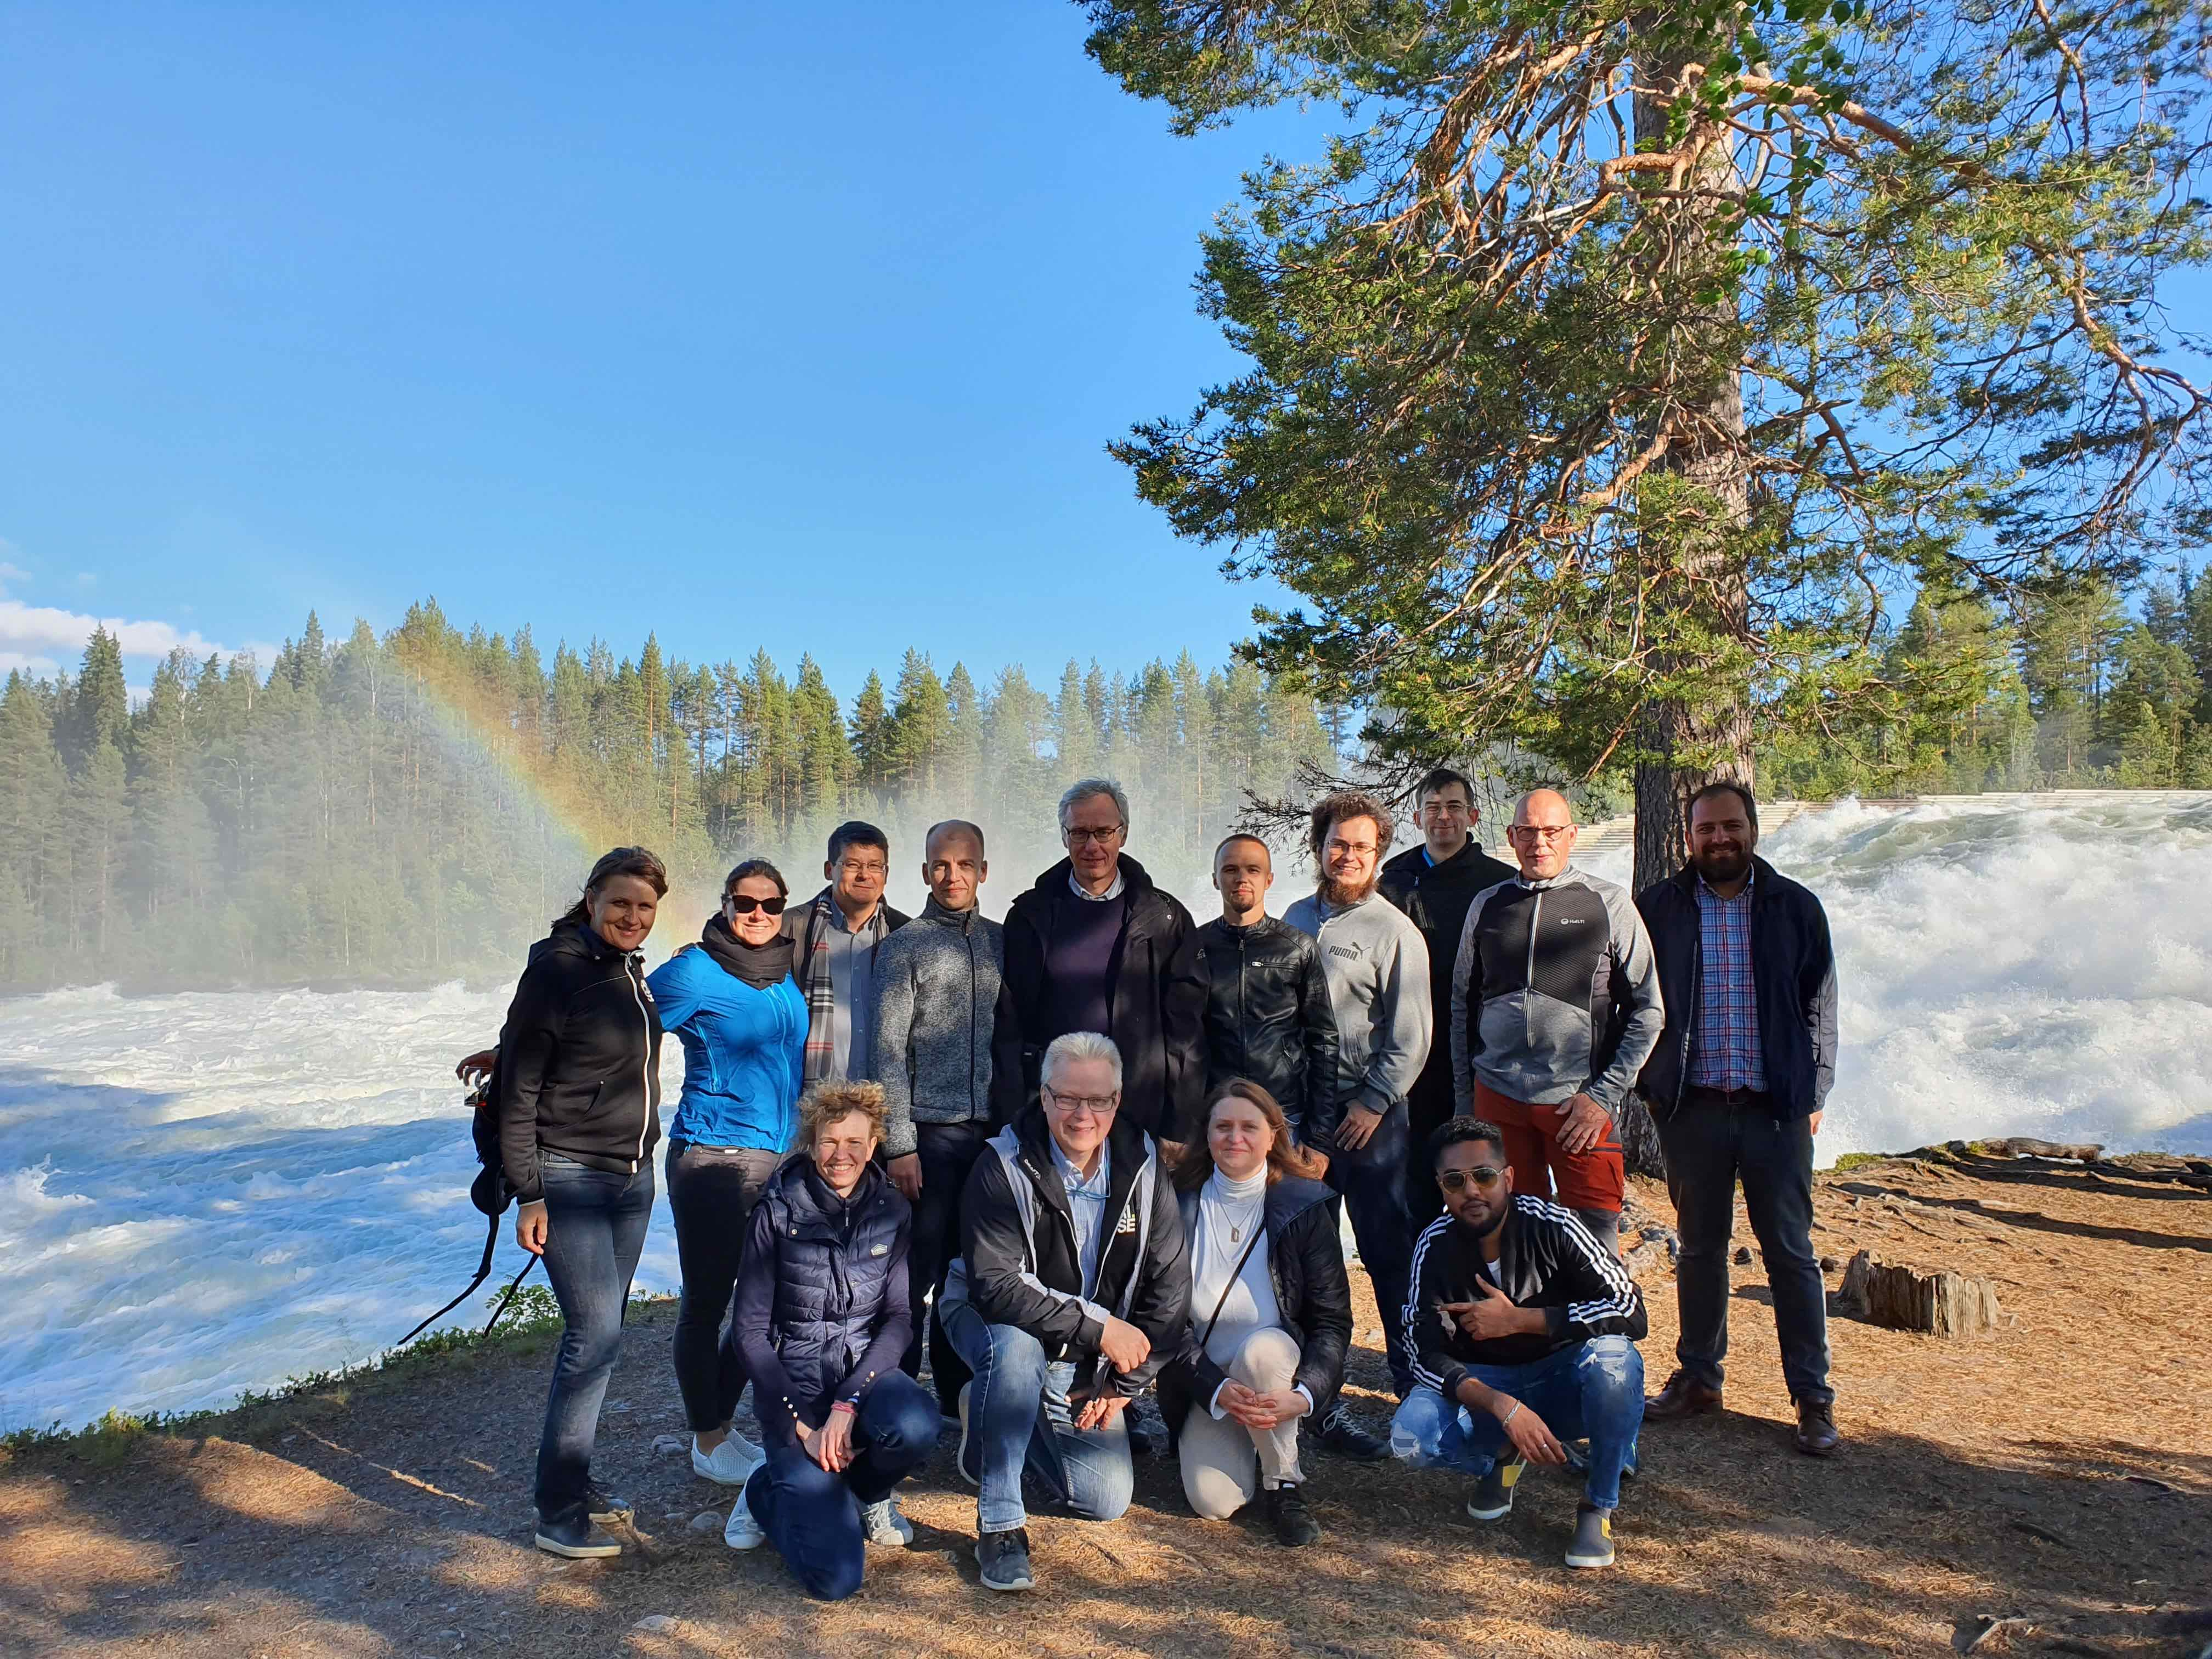 10731 20190627 BalticLSC team at the Great Falls